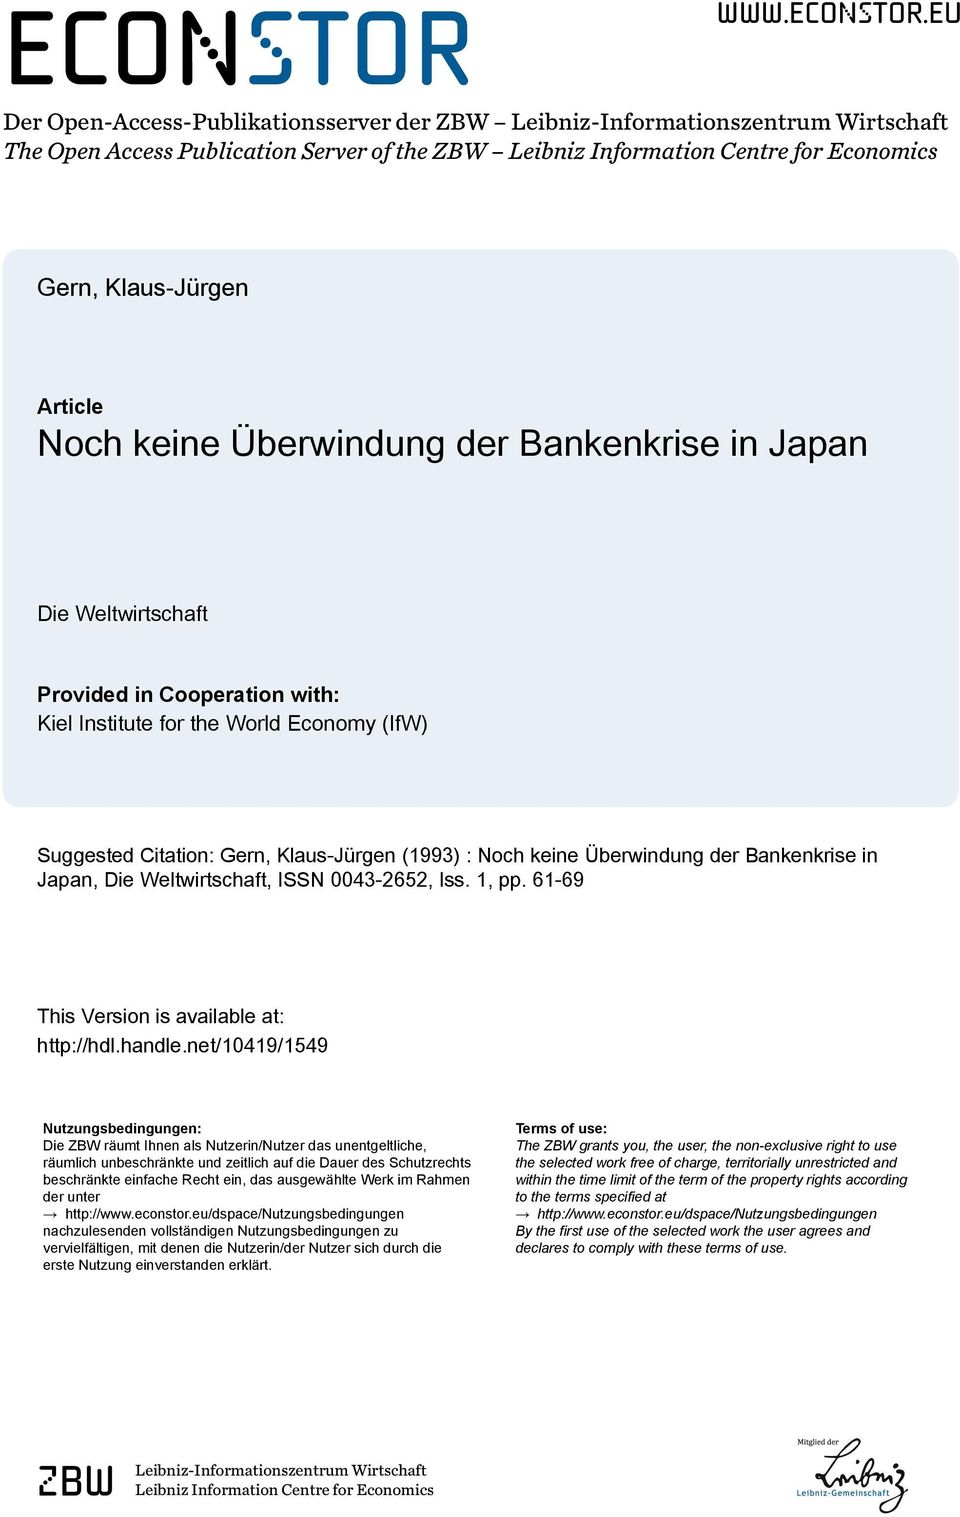 eu Der Open-Access-Publikationsserver der ZBW Leibniz-Informationszentrum Wirtschaft The Open Access Publication Server of the ZBW Leibniz Information Centre for Economics Gern, Klaus-Jürgen Article